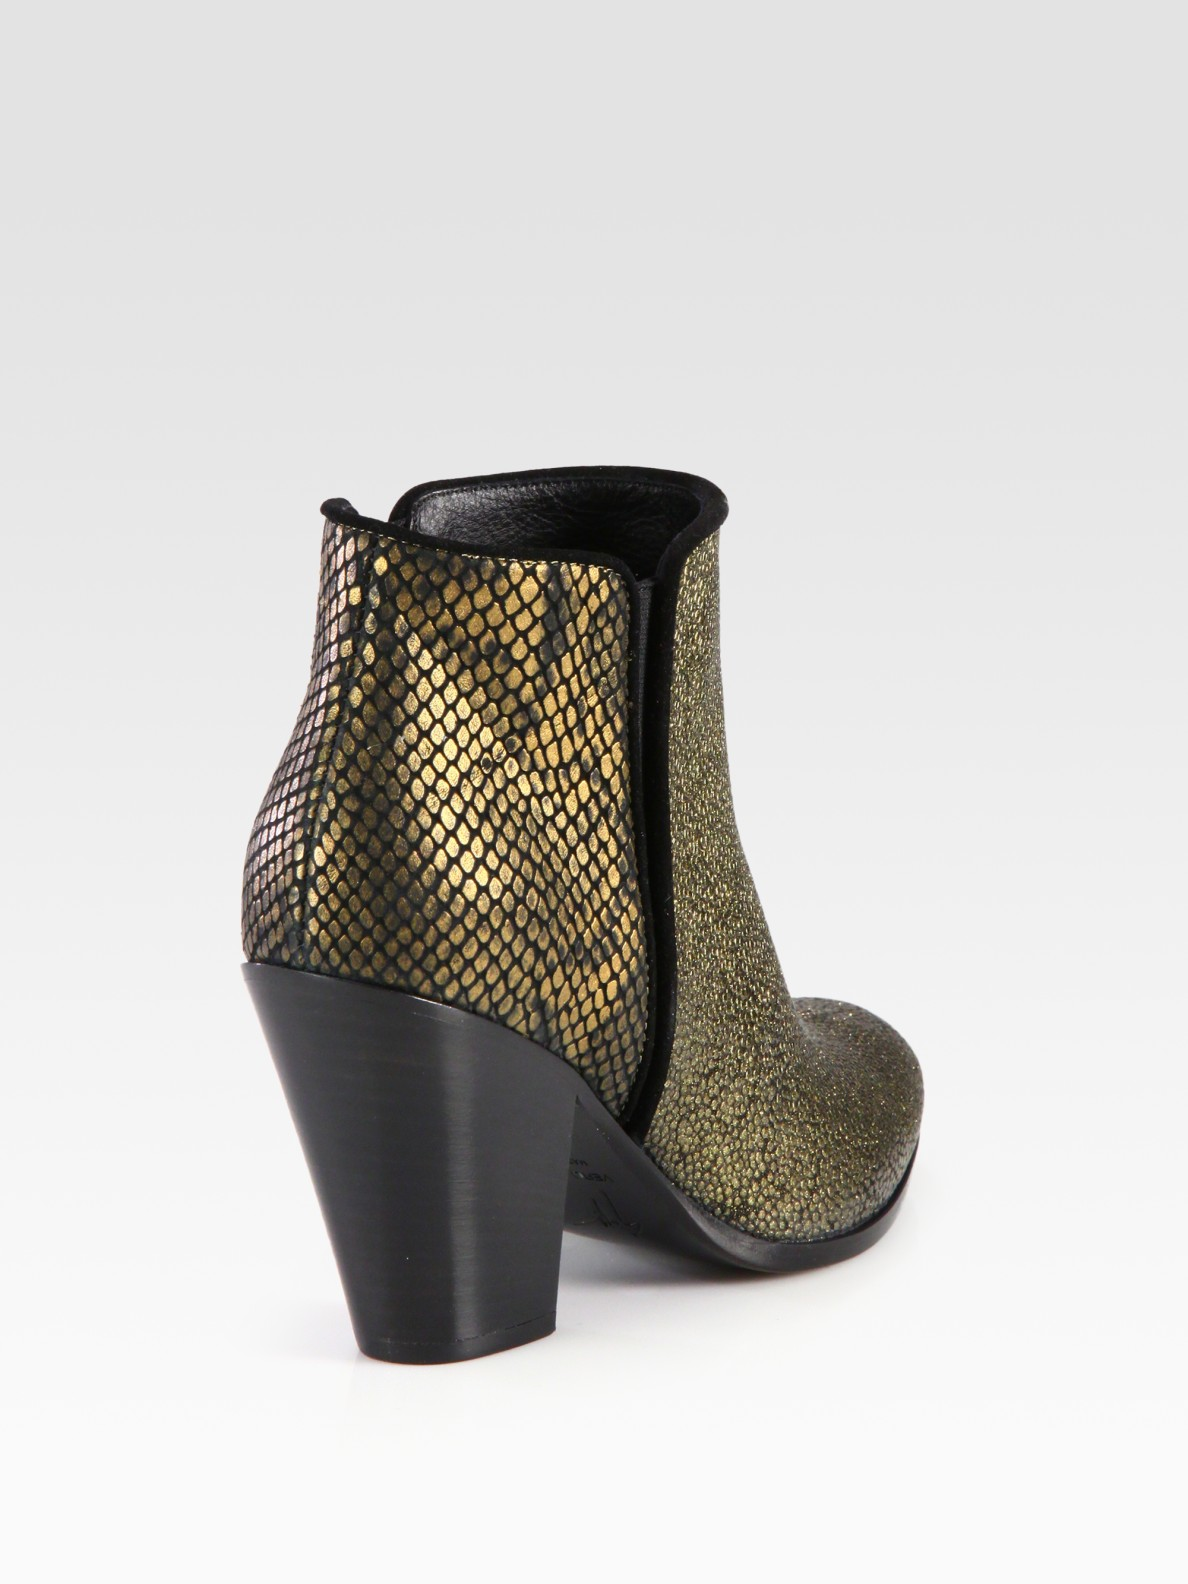 Giuseppe Zanotti Embossed Ankle Boots footlocker online outlet get authentic for sale top quality for nice cheap price NuGkgvfBxB